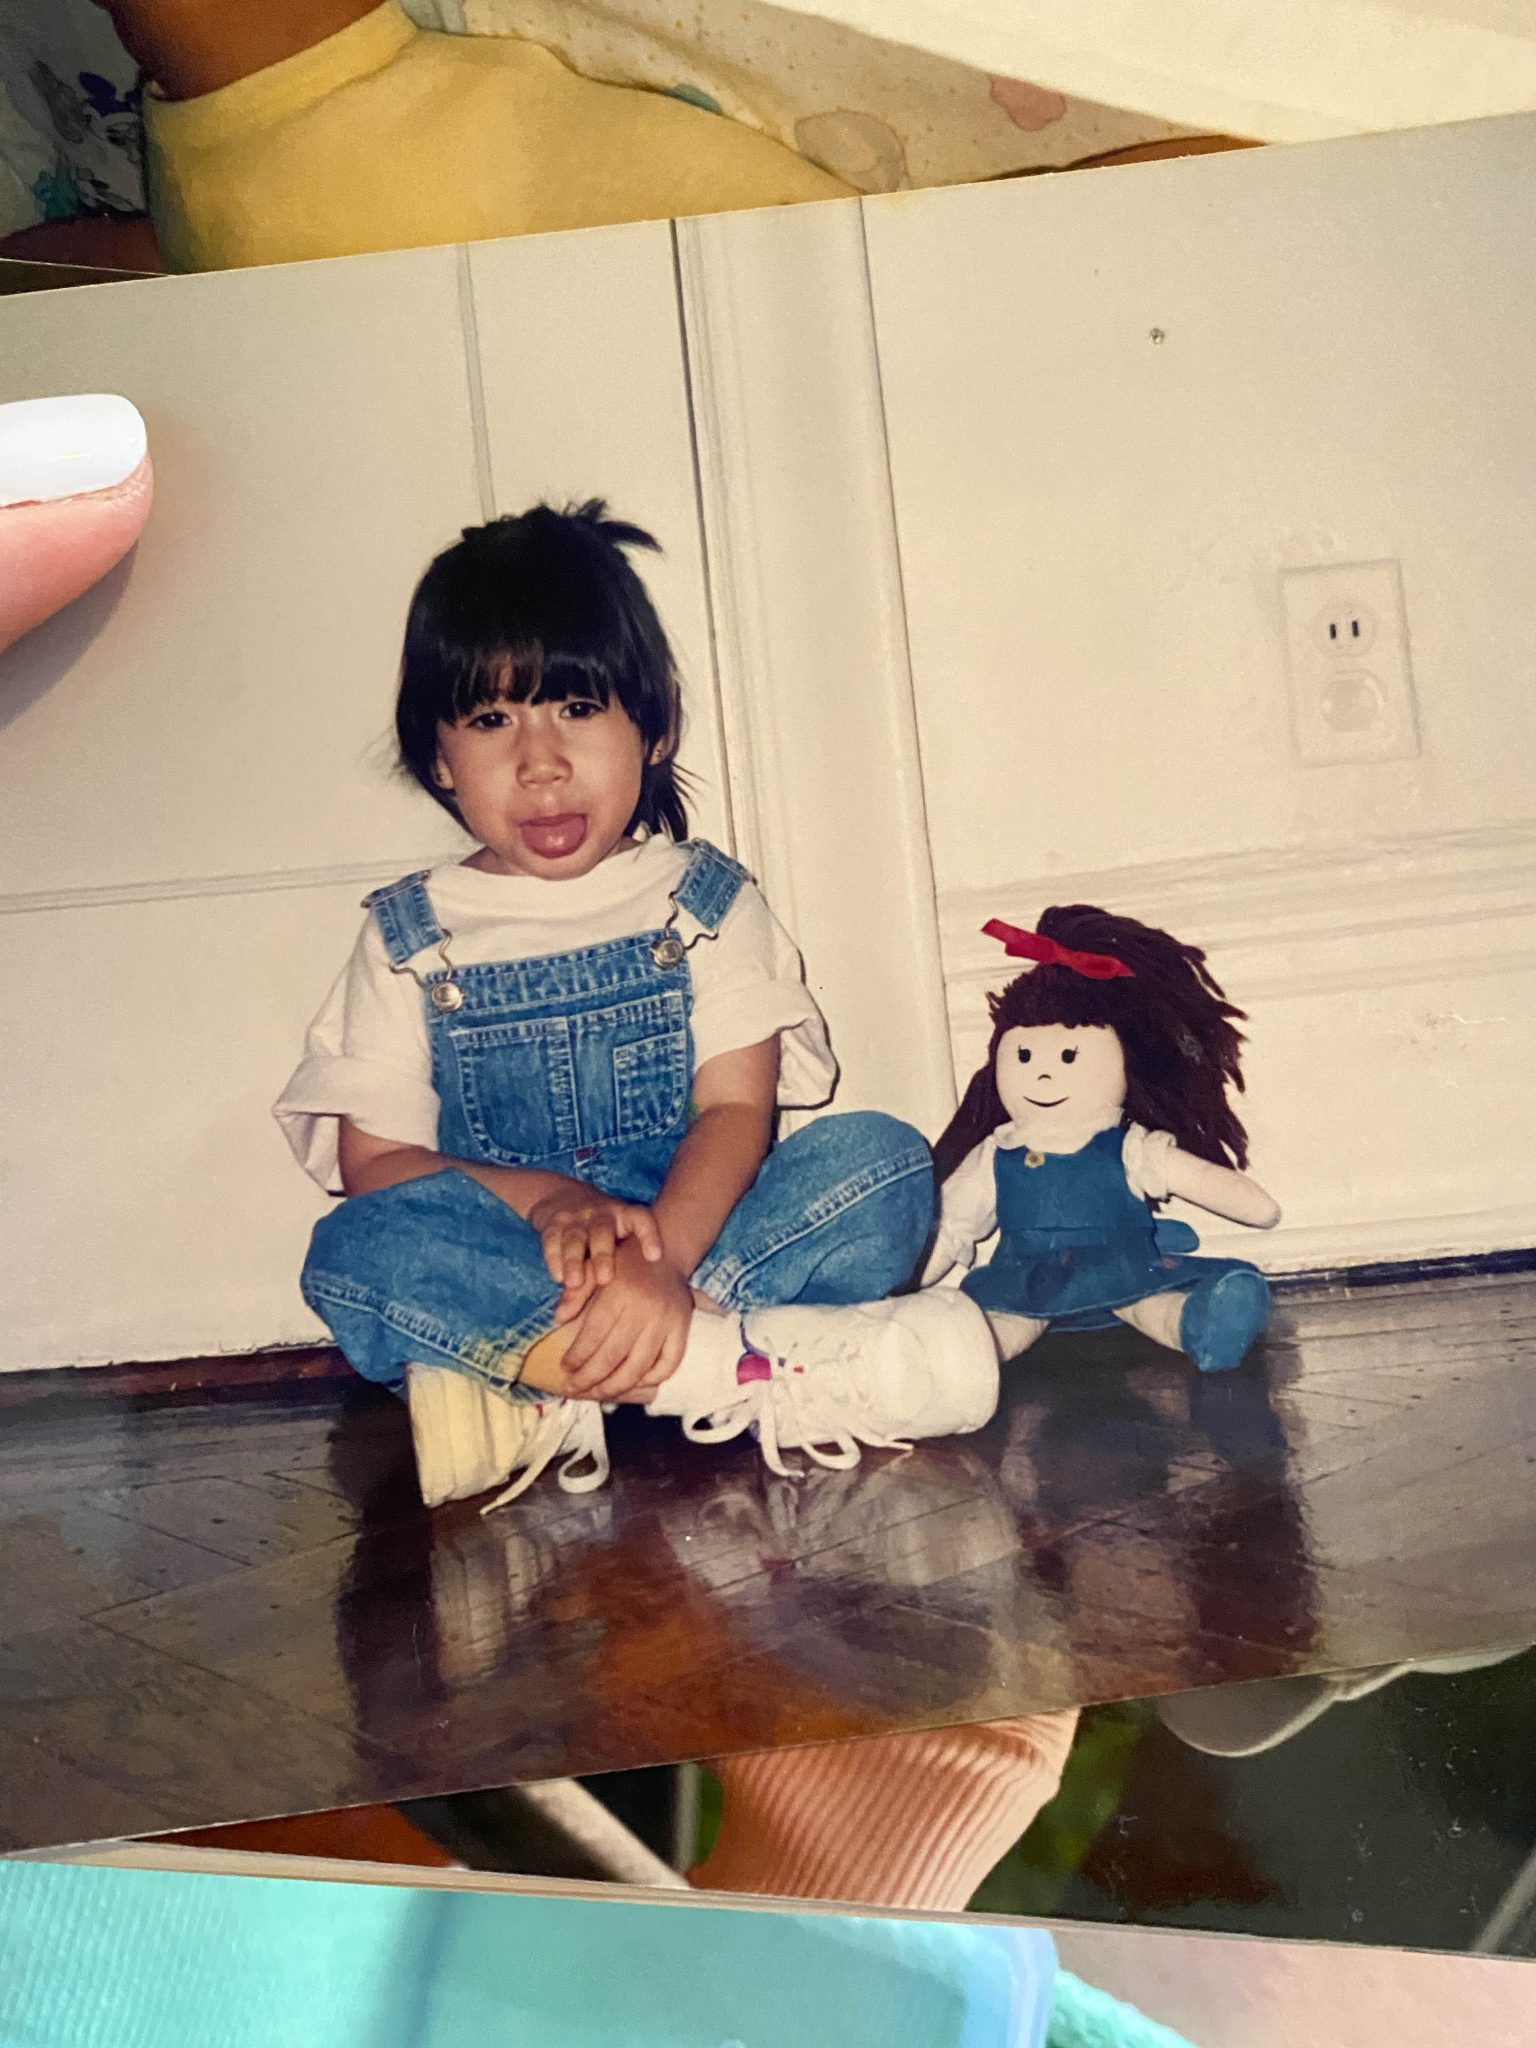 Life Lately July 2021 by Basically A Mess (photo of a little girl in denim overalls)